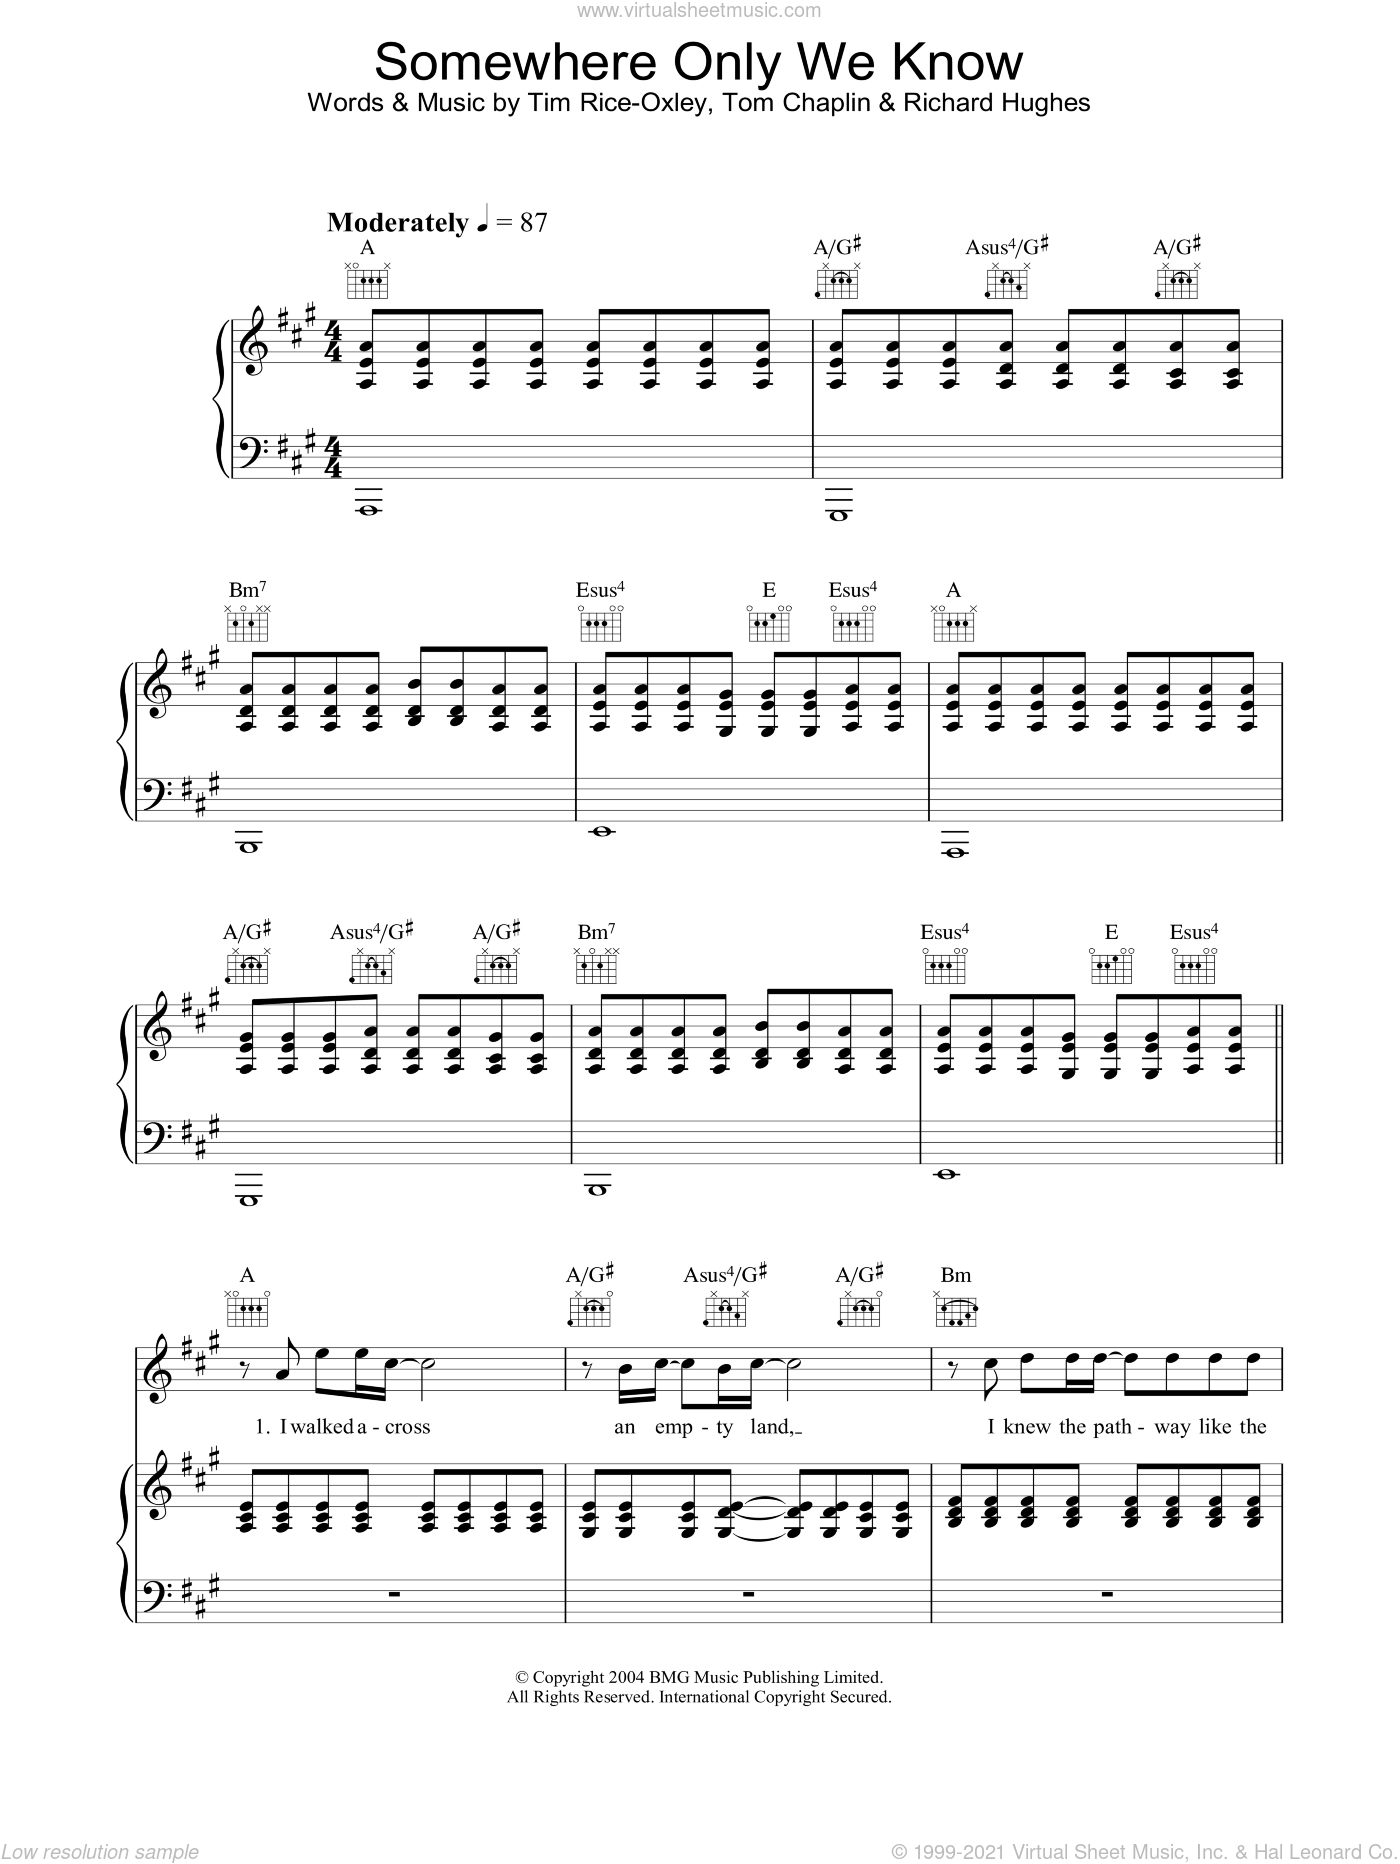 Somewhere Only We Know sheet music for voice, piano or guitar by Tim Rice-Oxley, intermediate skill level